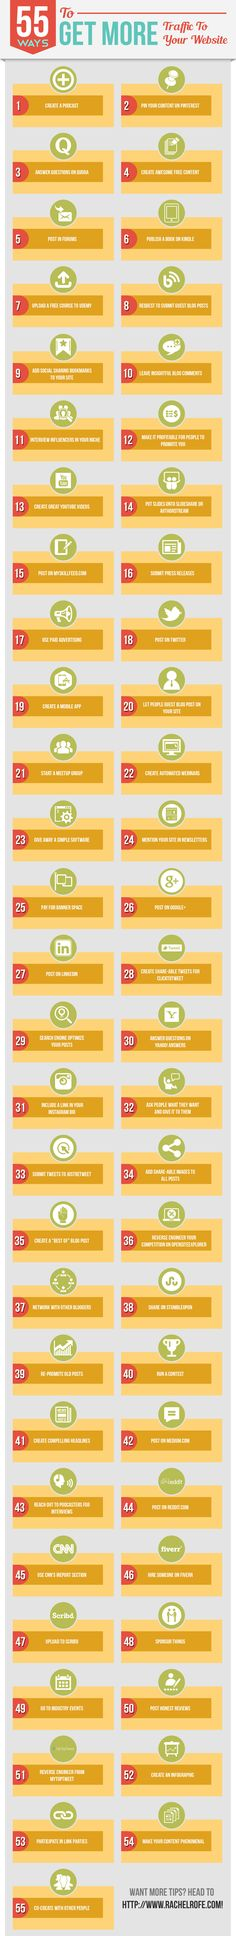 55 ways to get more traffic to your website. Like this? Follow @rachelrofe :)